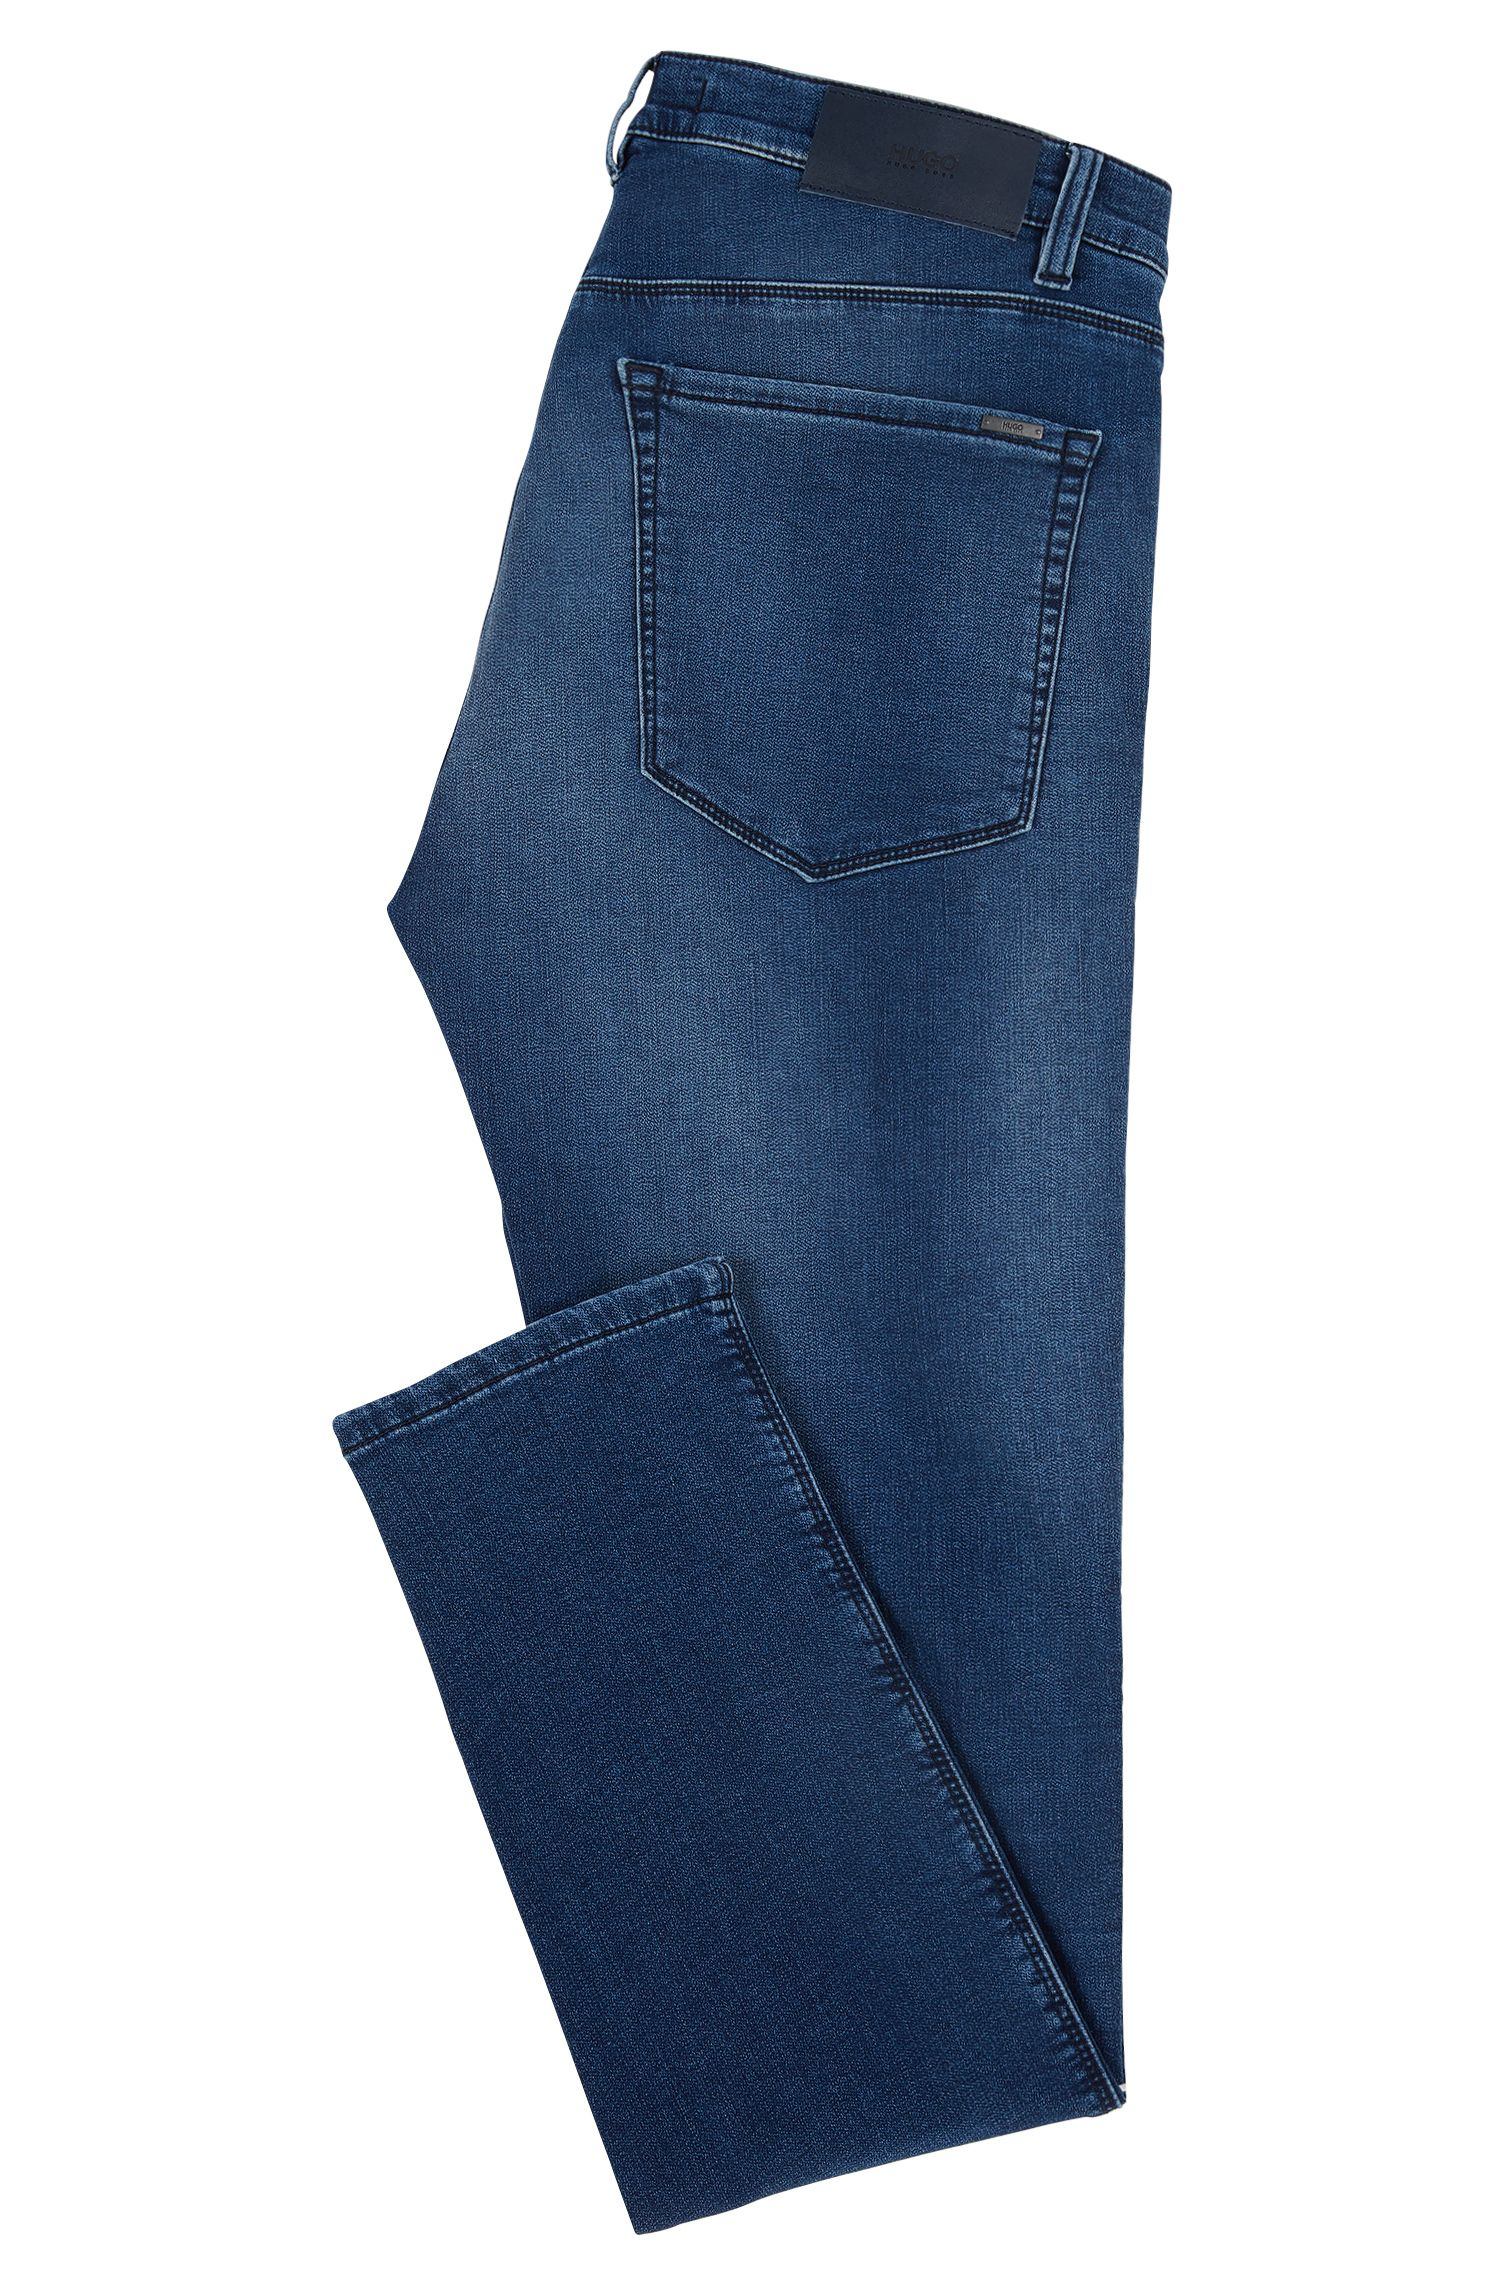 Stretch Cotton Jean, Skinny Fit | HUGO 734, Turquoise